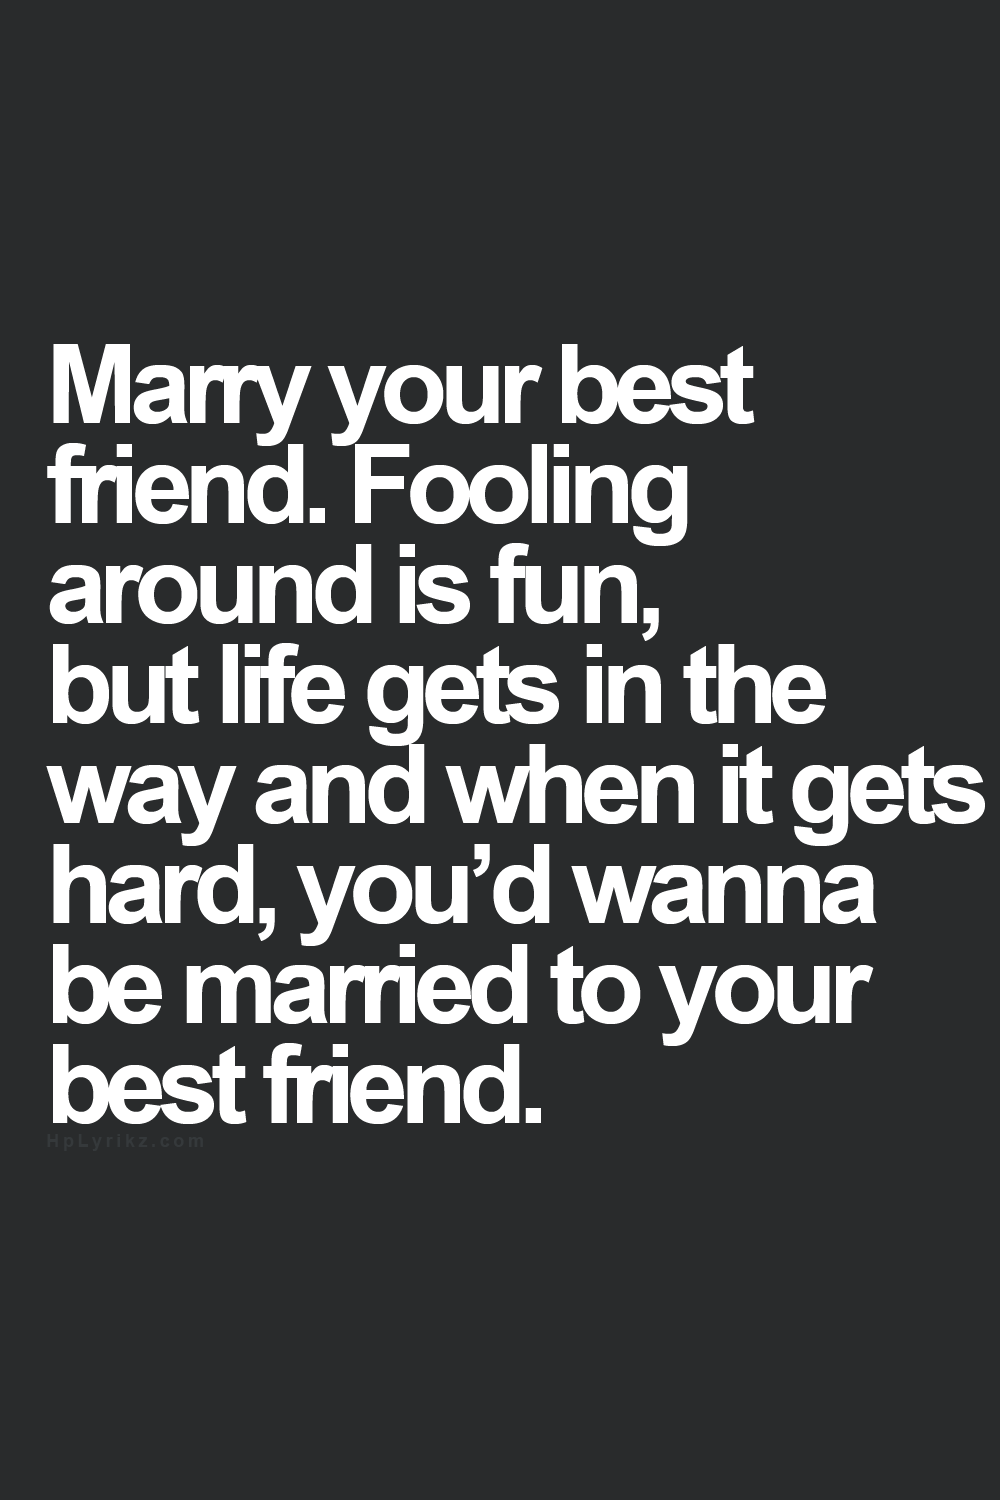 Quotes About Marrying Your Best Friend. QuotesGram